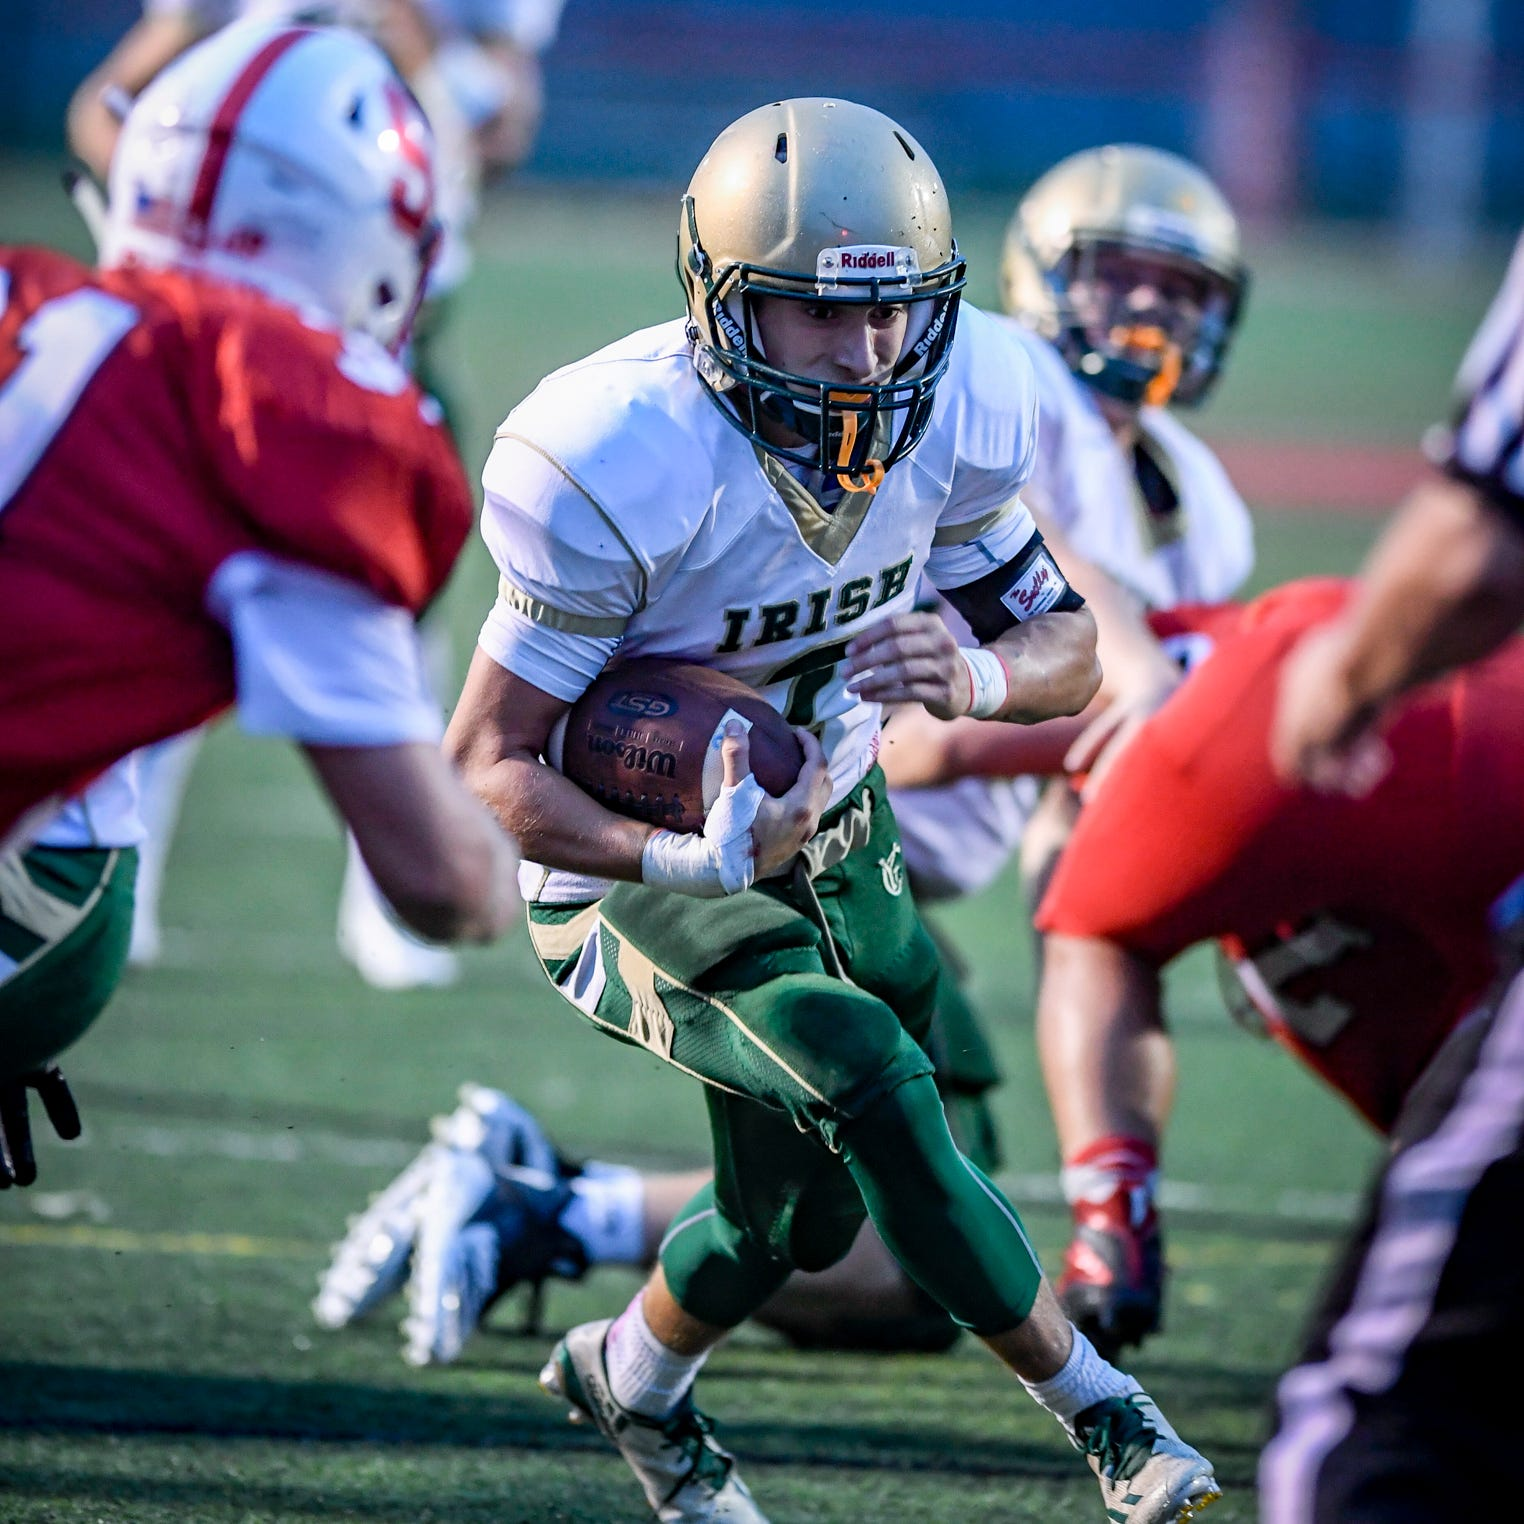 After big win vs. Delone, York Catholic now ranked among state's best football teams